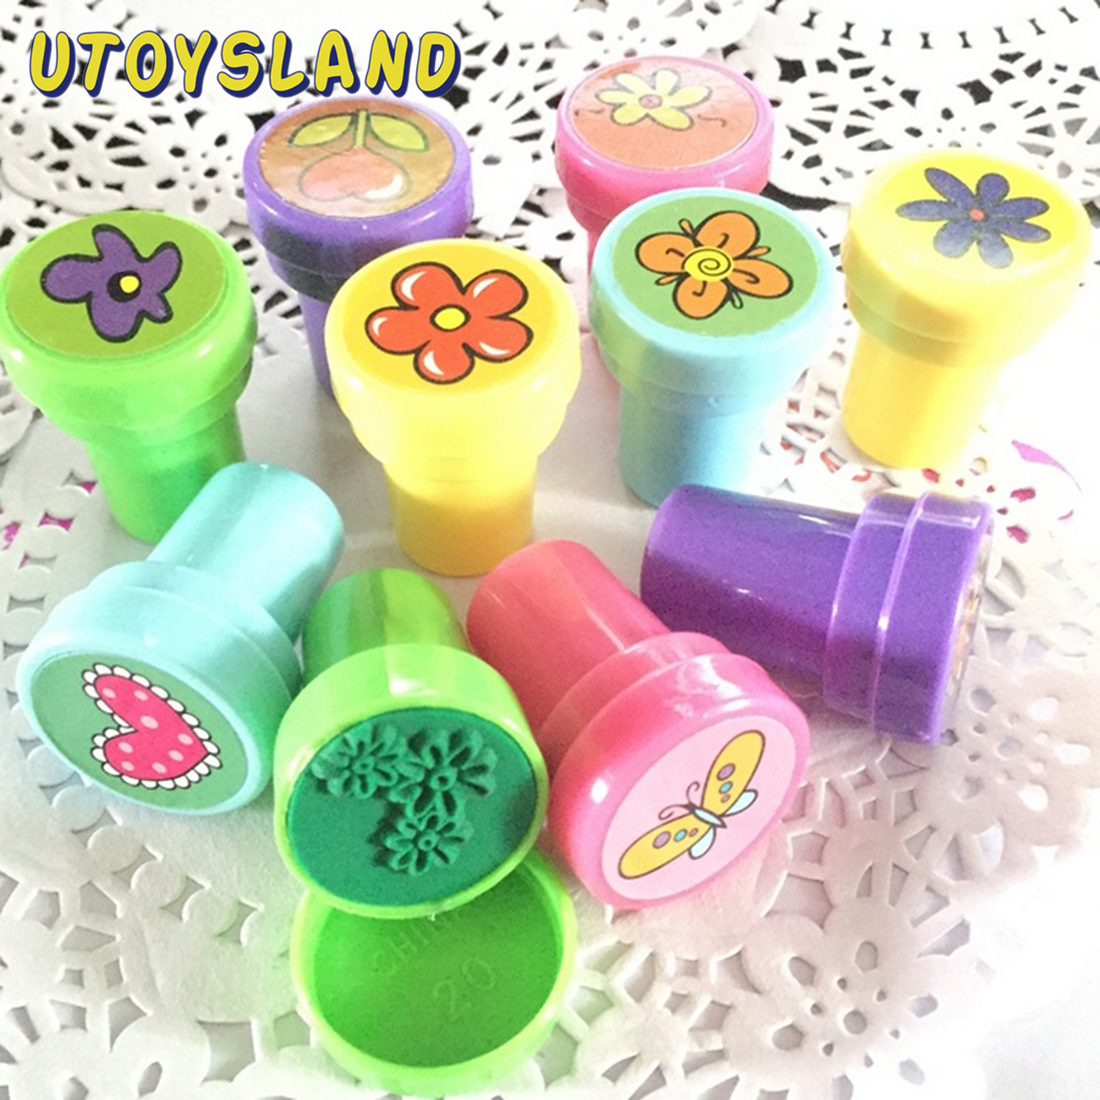 10Pcs Flower Stamps Set Stationery For Kids Gift DIY Diary Decorative Party Toy Stamp Toy - Color Random